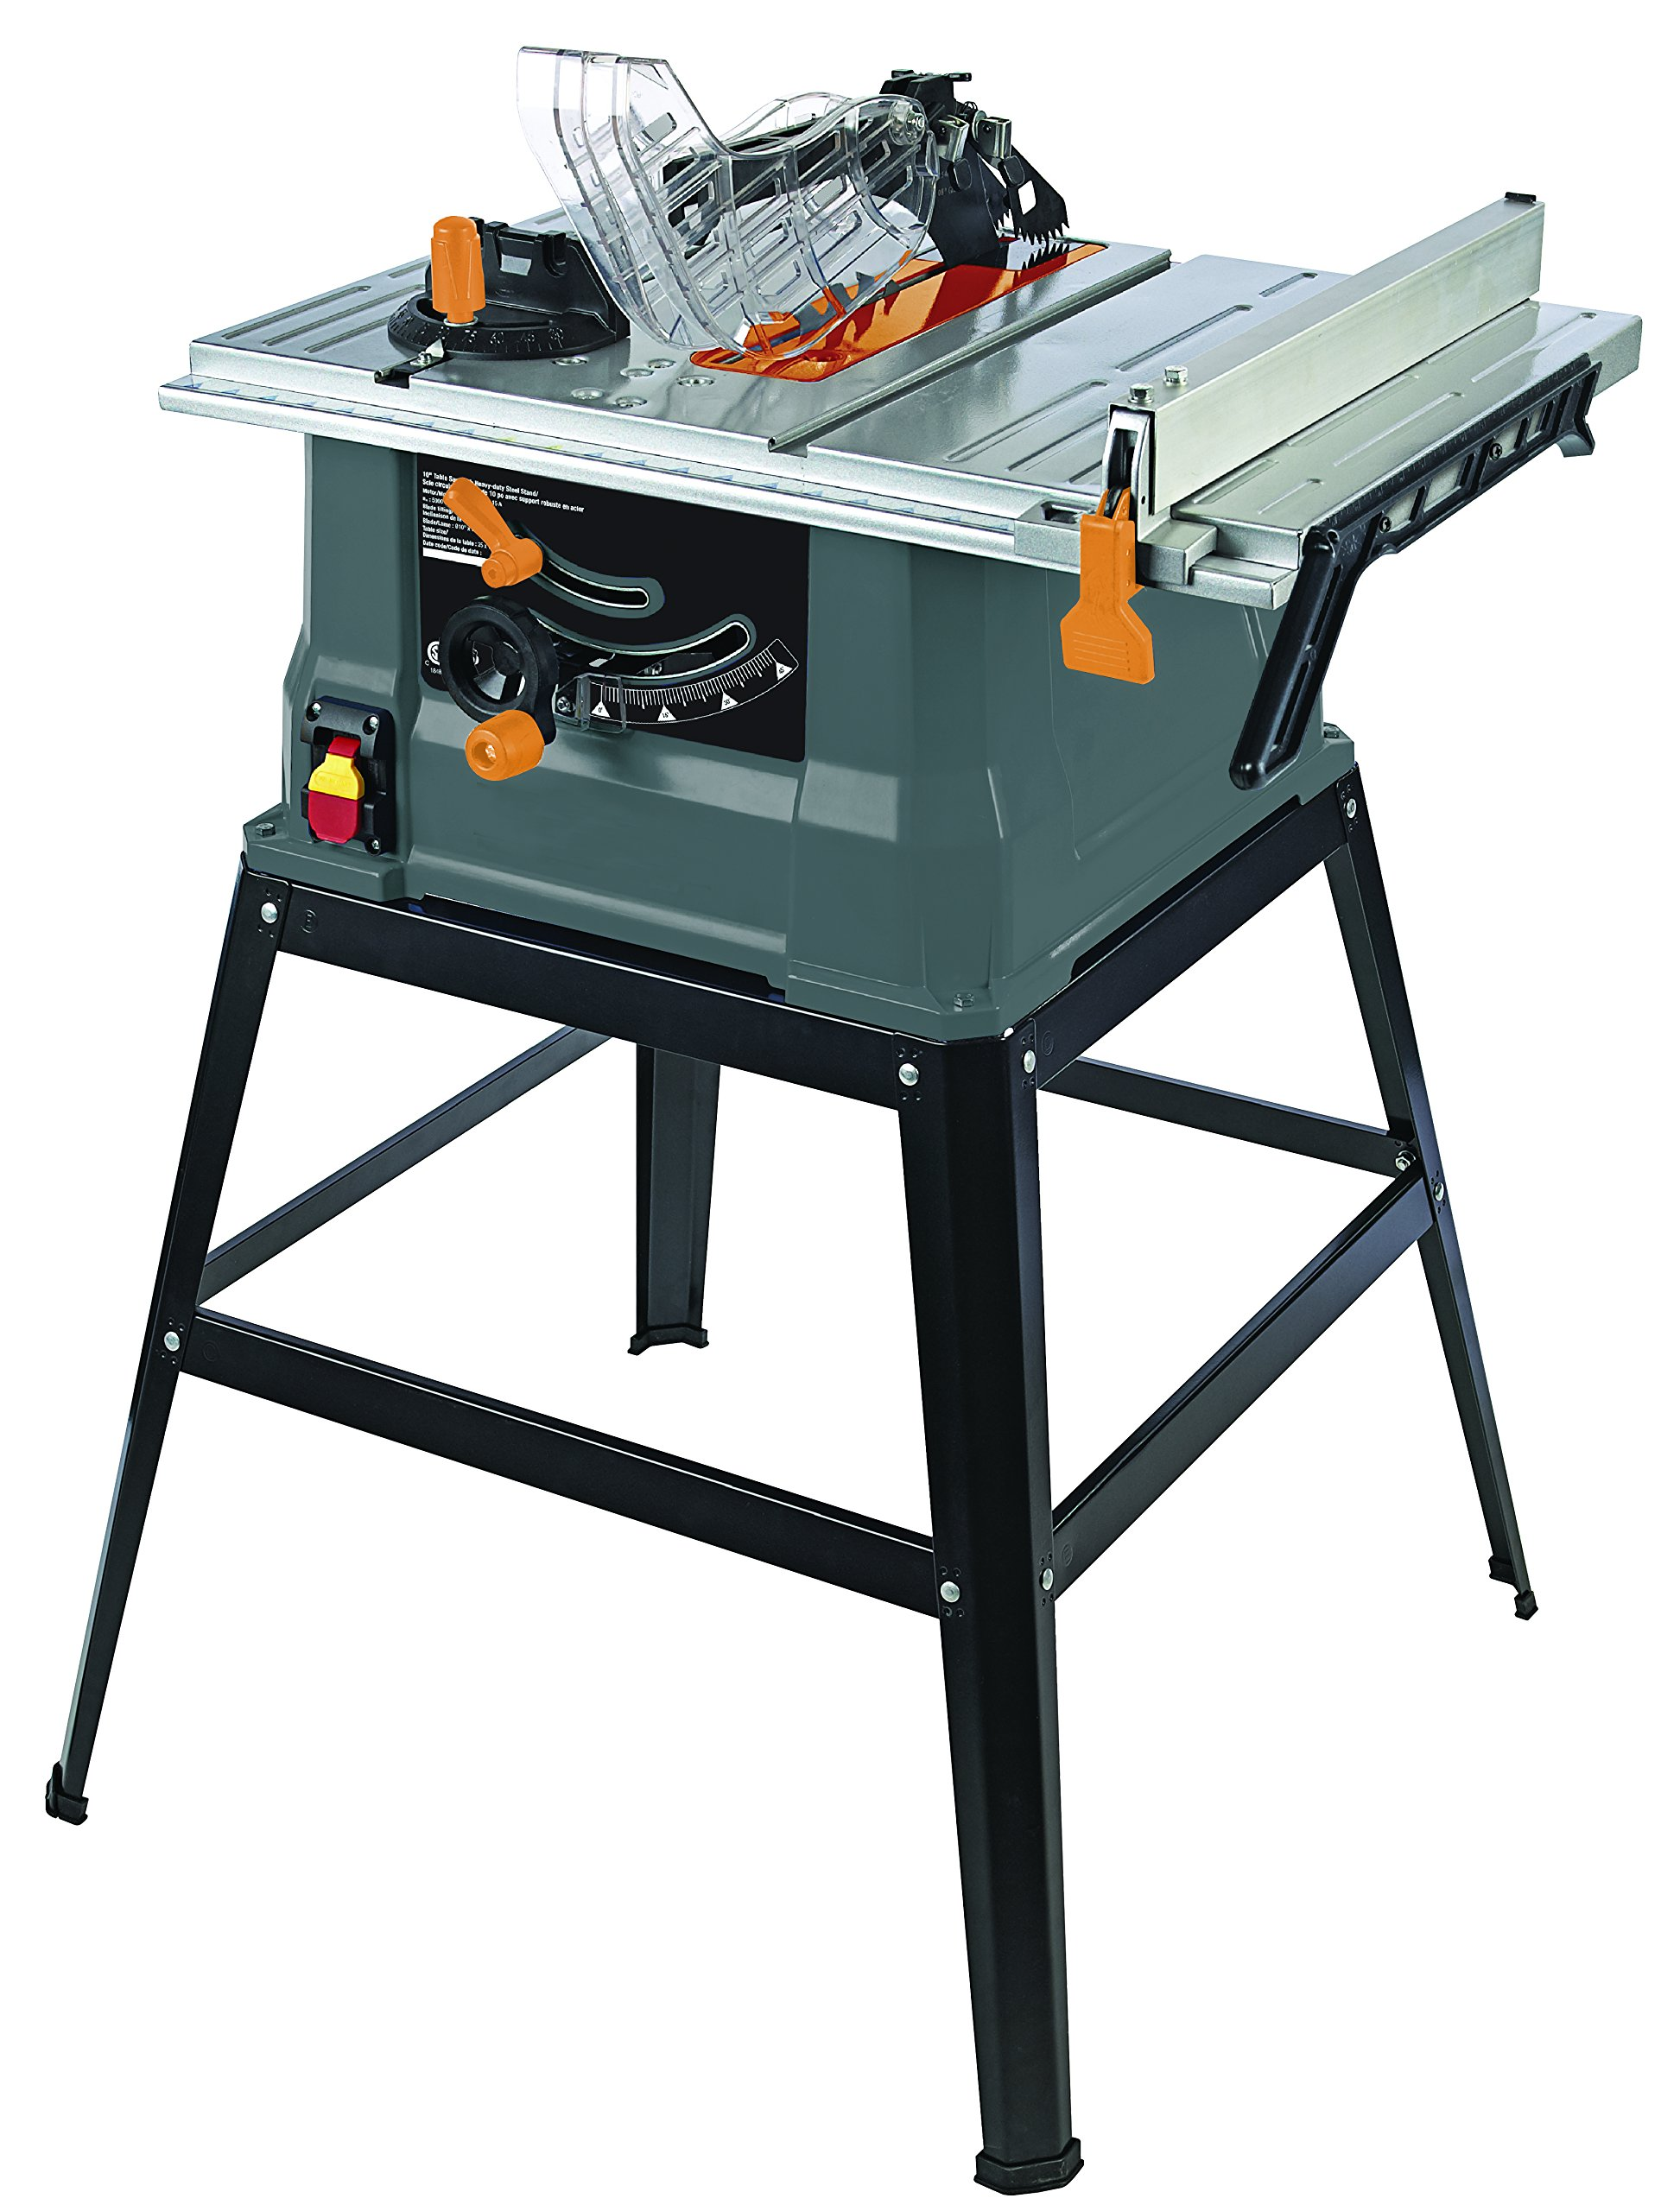 TruePower 10'' 15 AMP TABLE SAW WITH STEEL STAND by TruePower